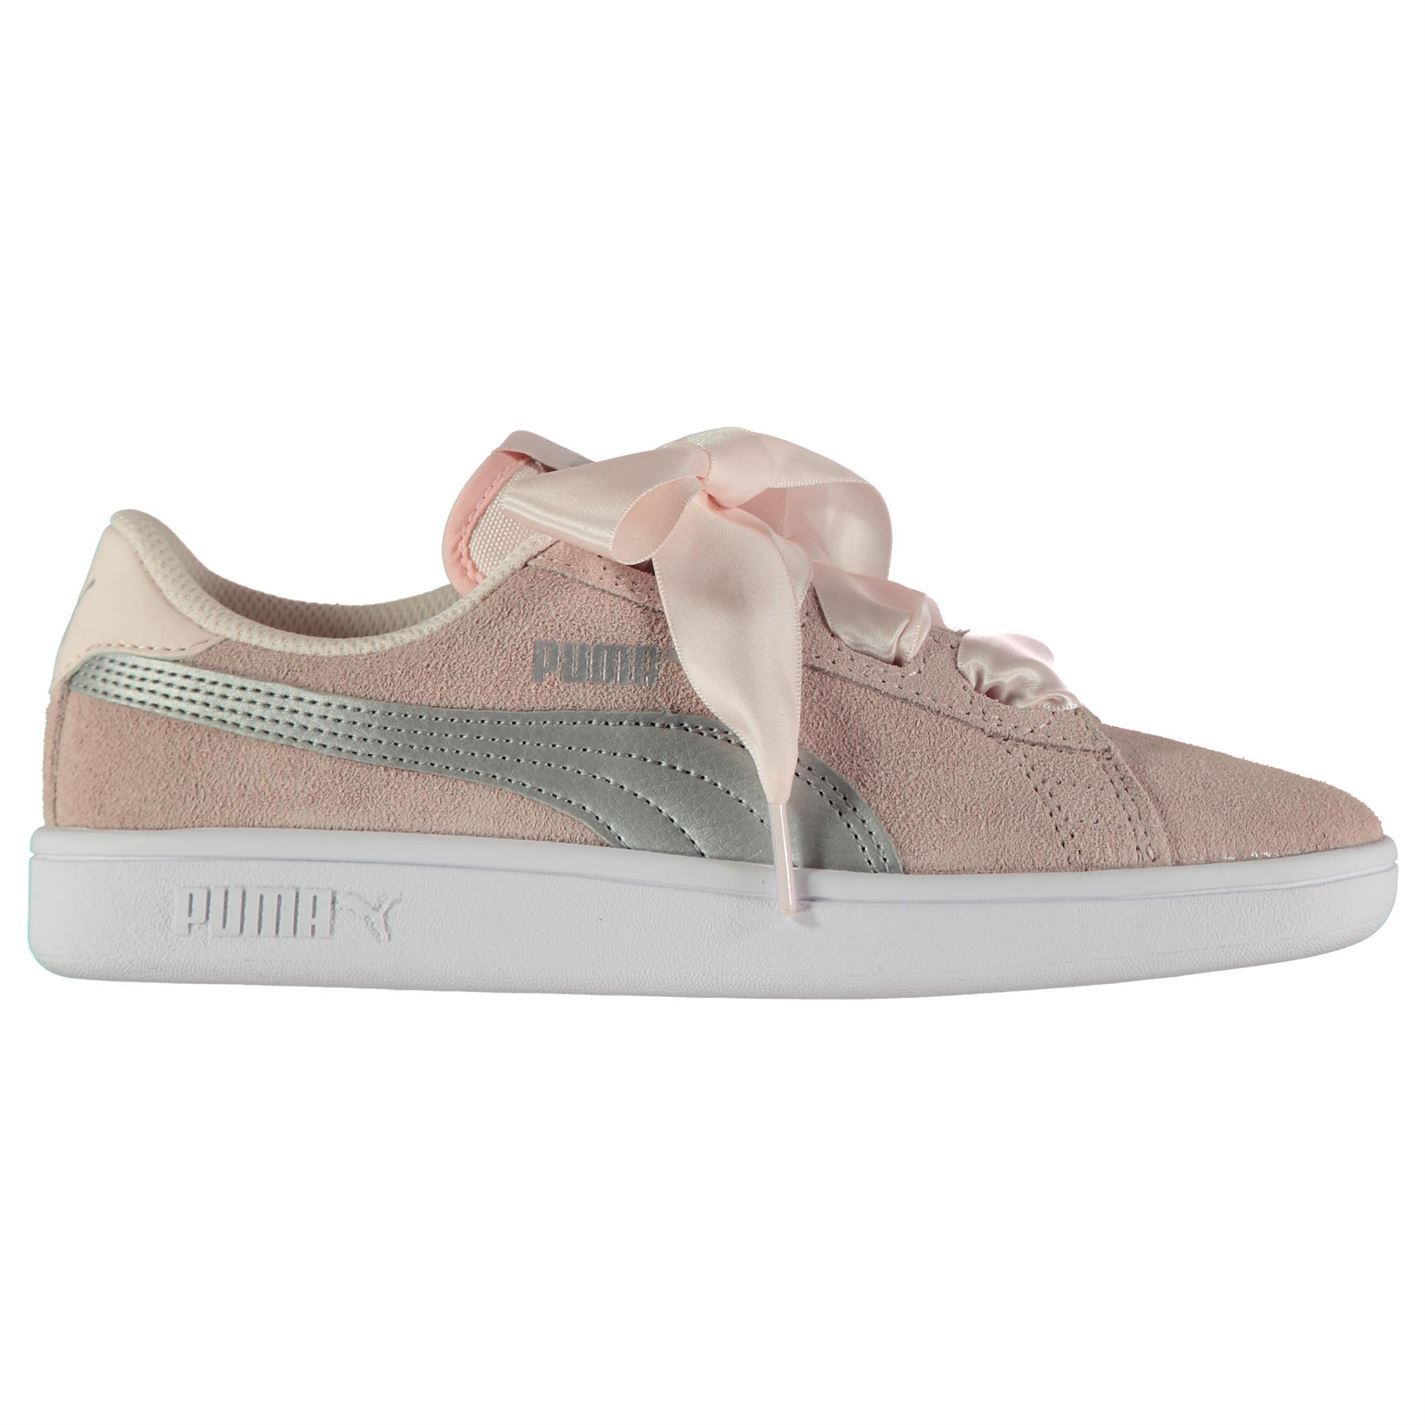 Details about Puma Kids Girls Smash Ribbon Trainers Court Suede Tonal  Stitching 821640024